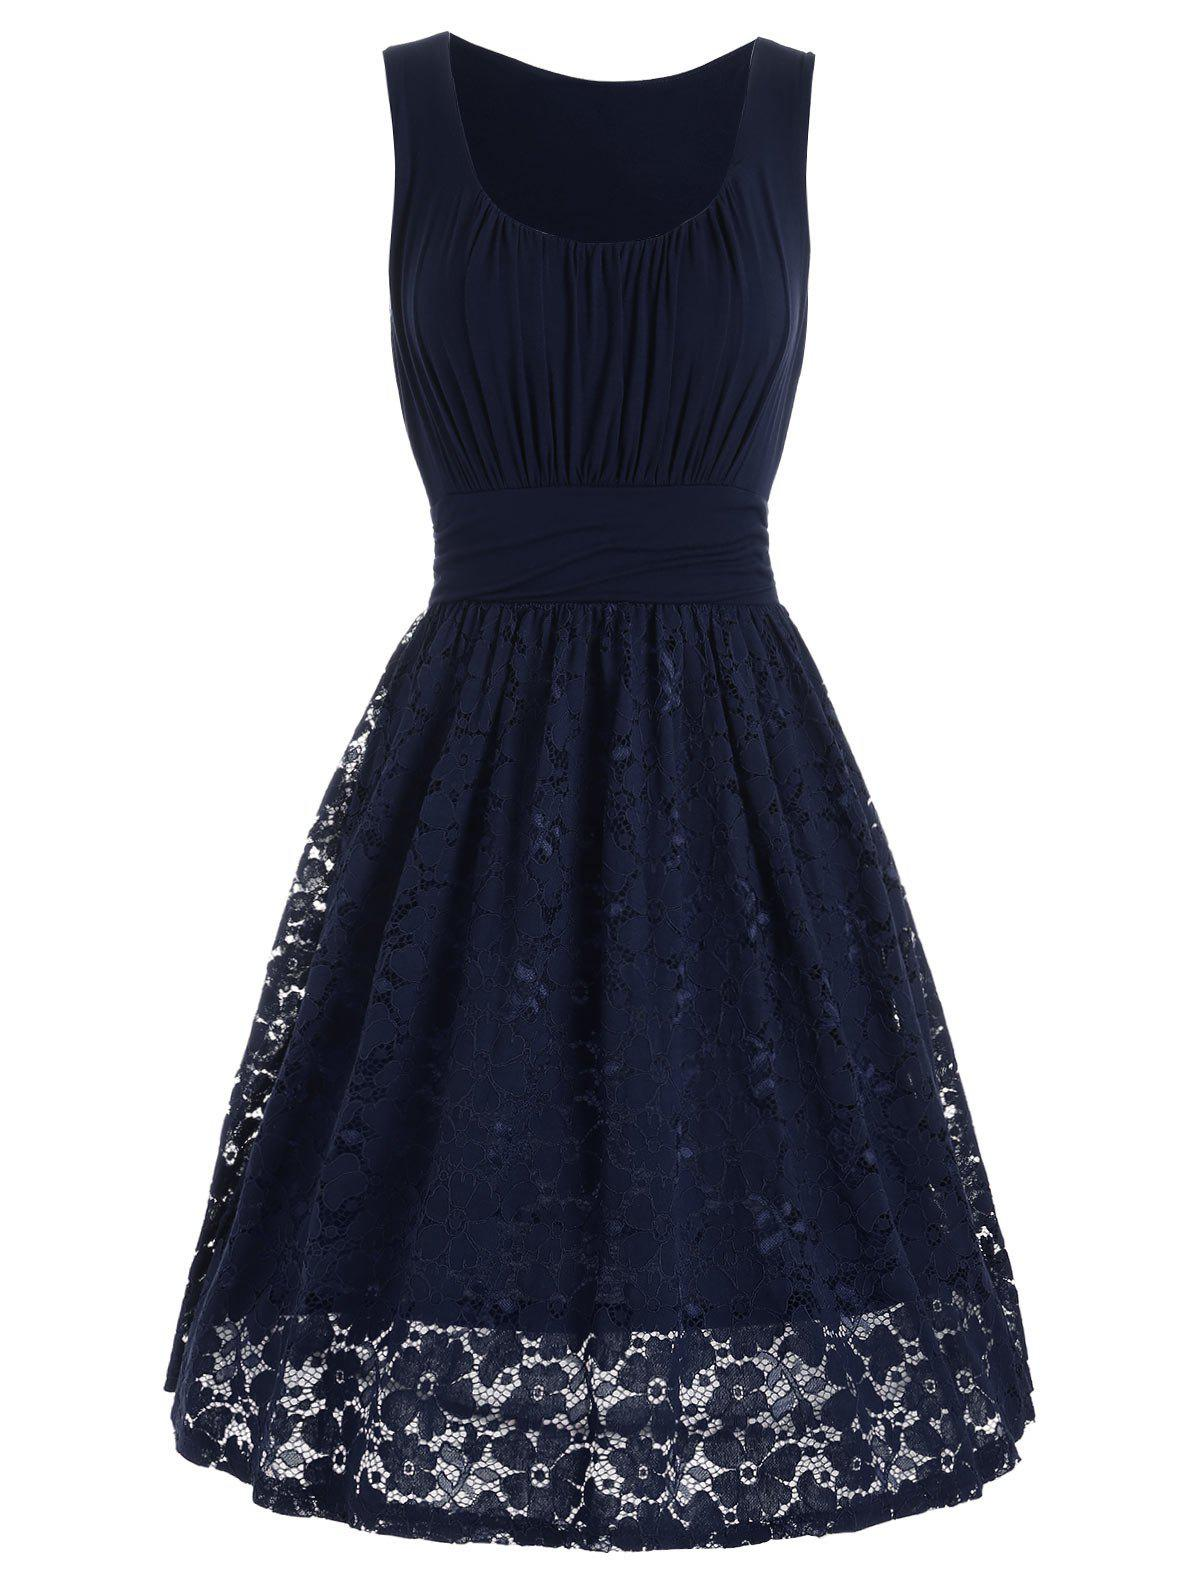 High Waist Drape Lace Panel Dress - PURPLISH BLUE S